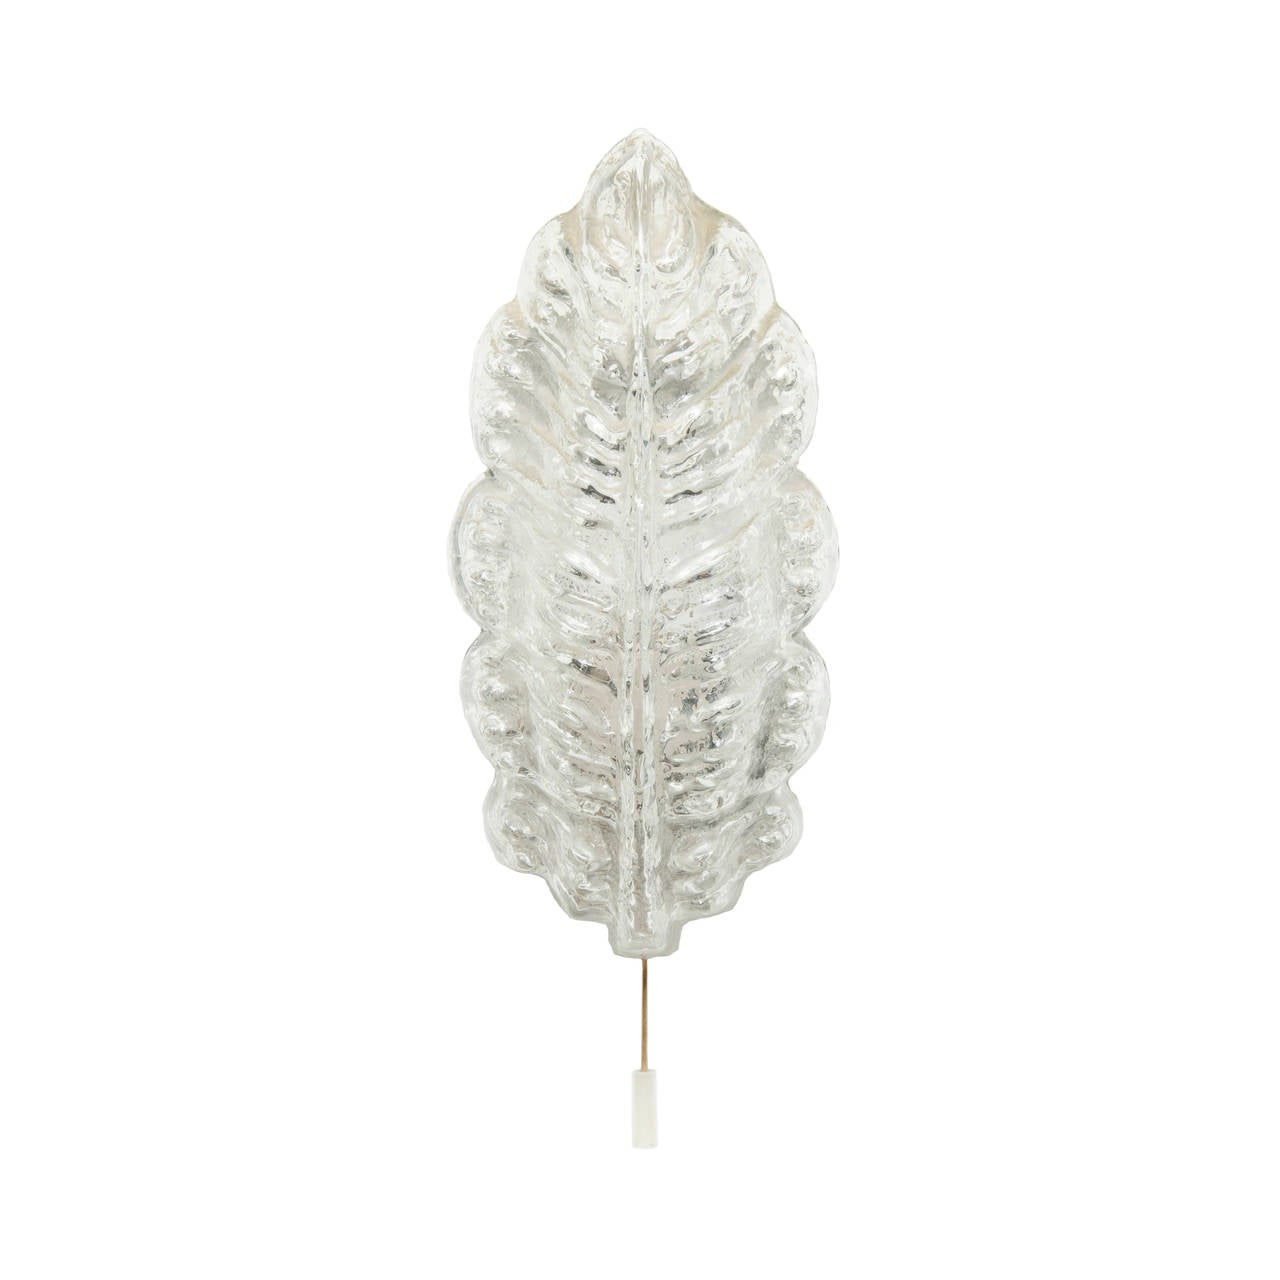 Wall Sconces With Leaves : Limburg Leaf Shaped Glass Wall Sconces at 1stdibs